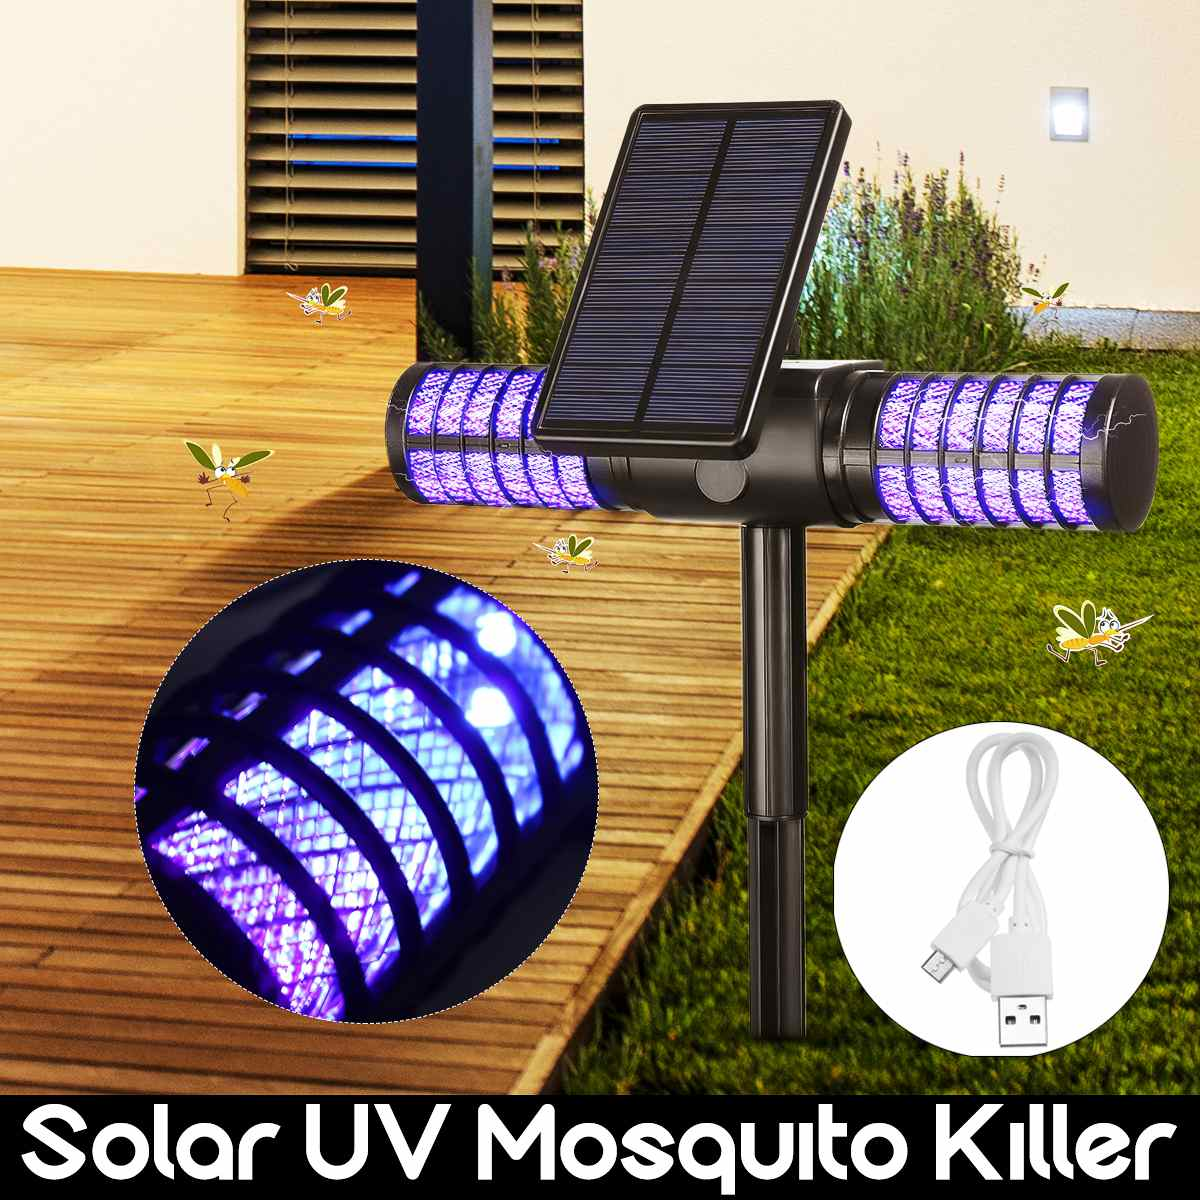 Outdoor Garden Mosquito Killer UV LED Lamp IP65 Waterproof Insect Trap Light Solar/USB Charging Automatic Switch Mosquito